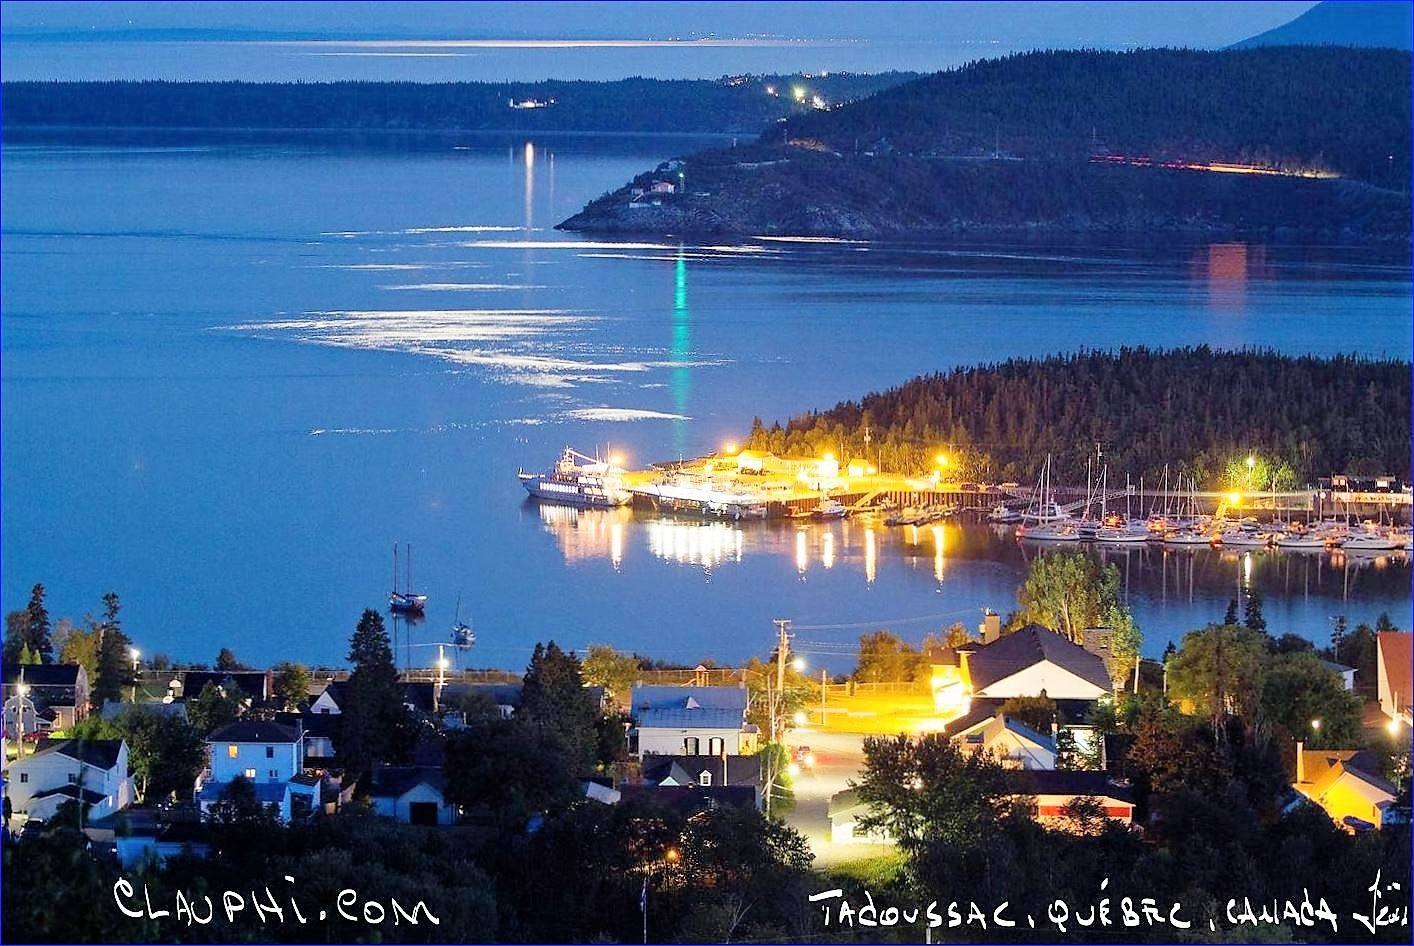 Tadoussac Night